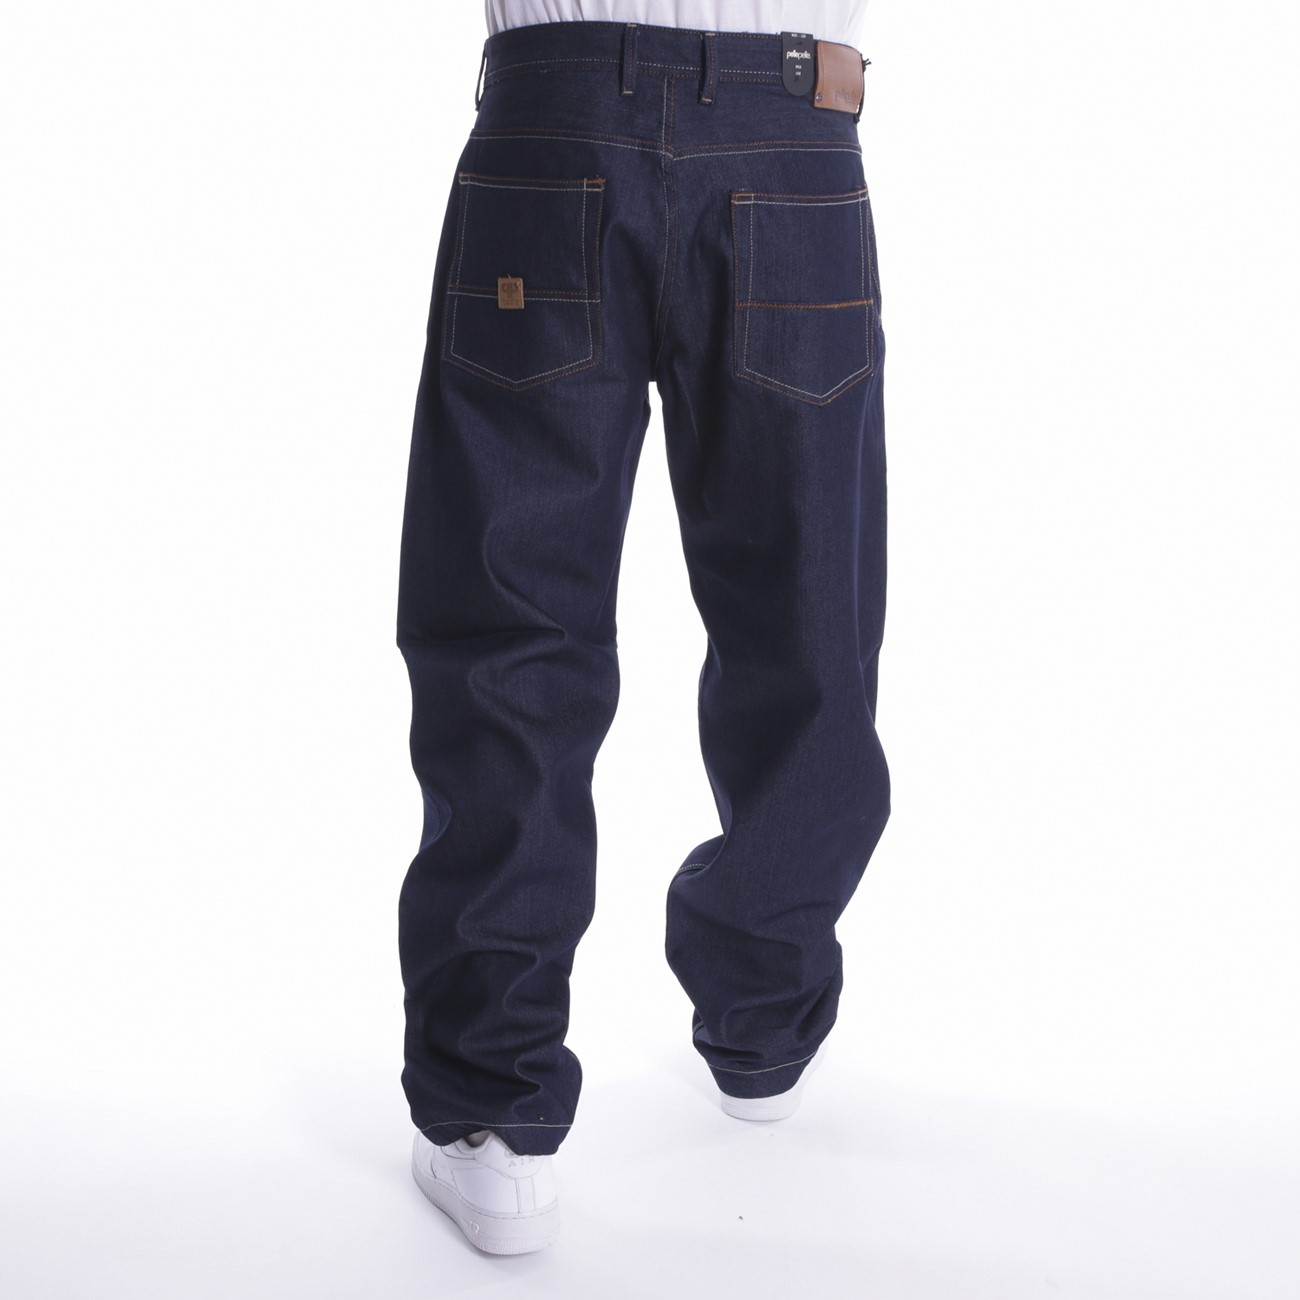 Size 42 Jeans For Men